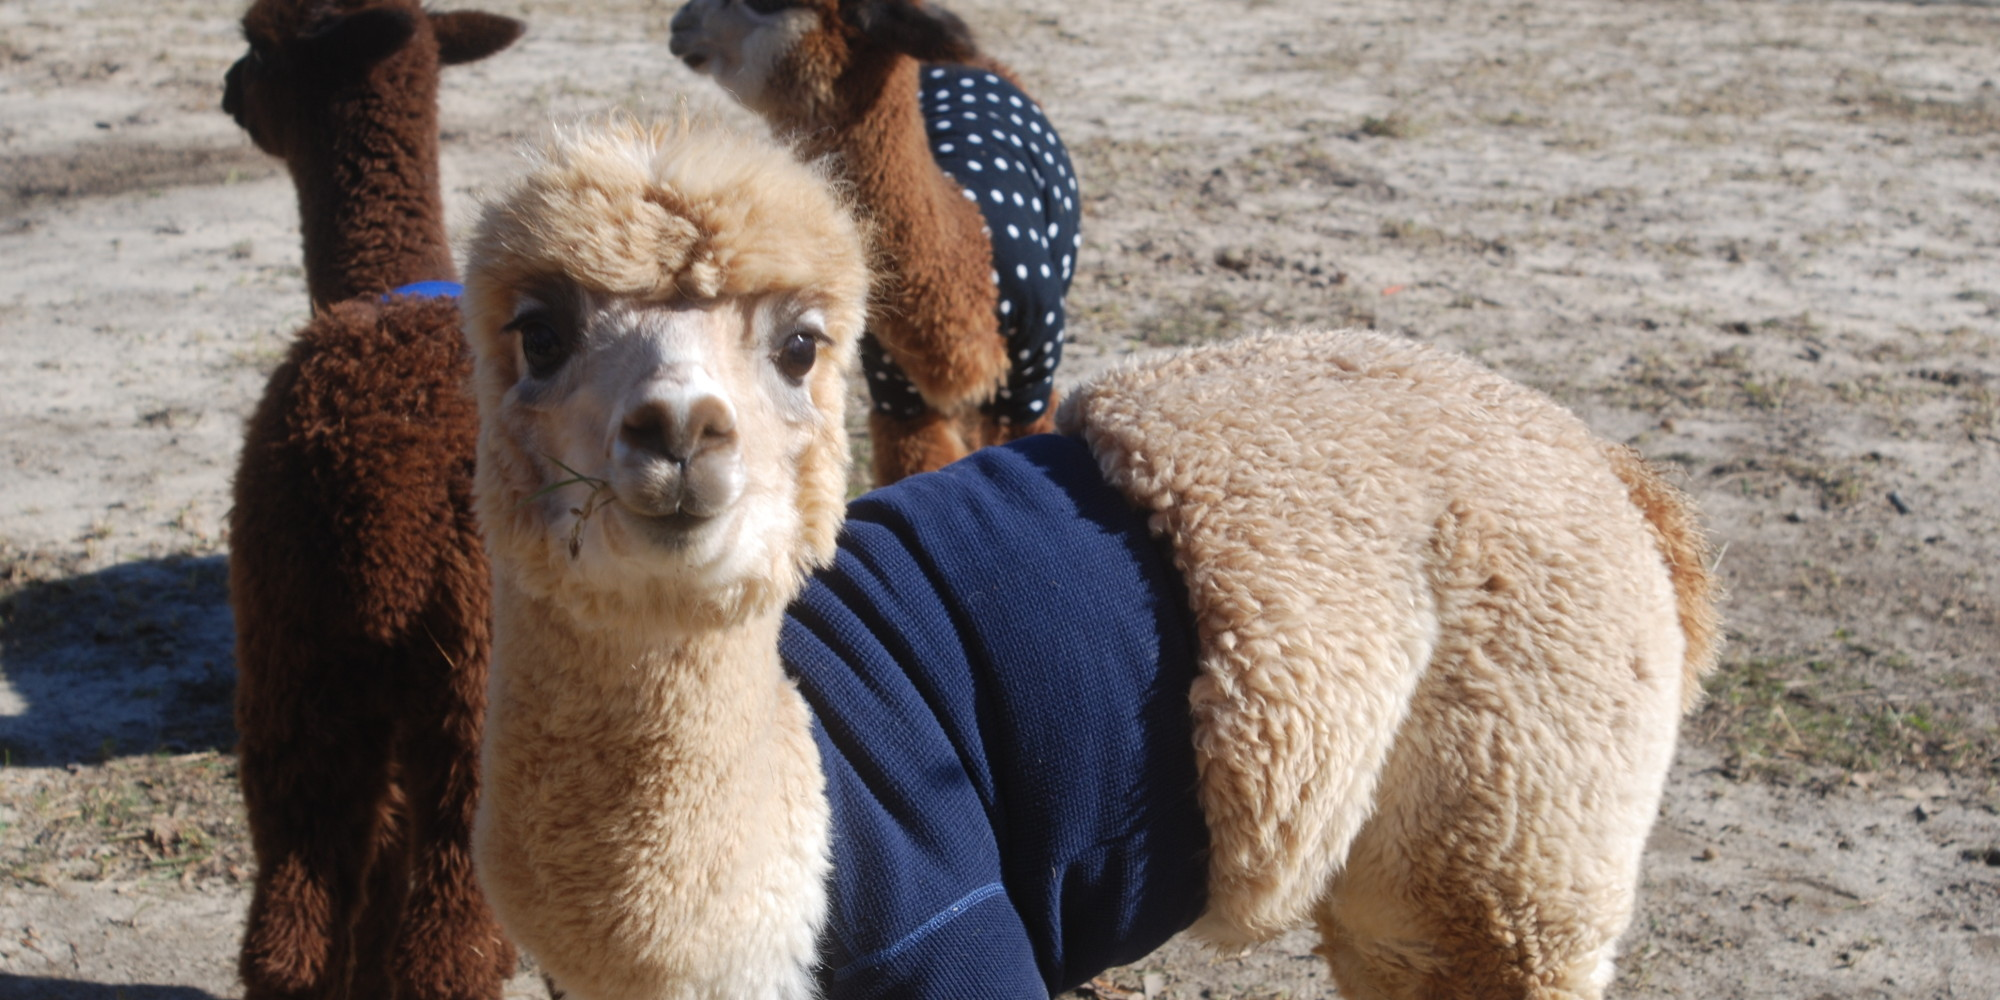 Baby Alpacas Wearing Sweaters Will Give You Something To